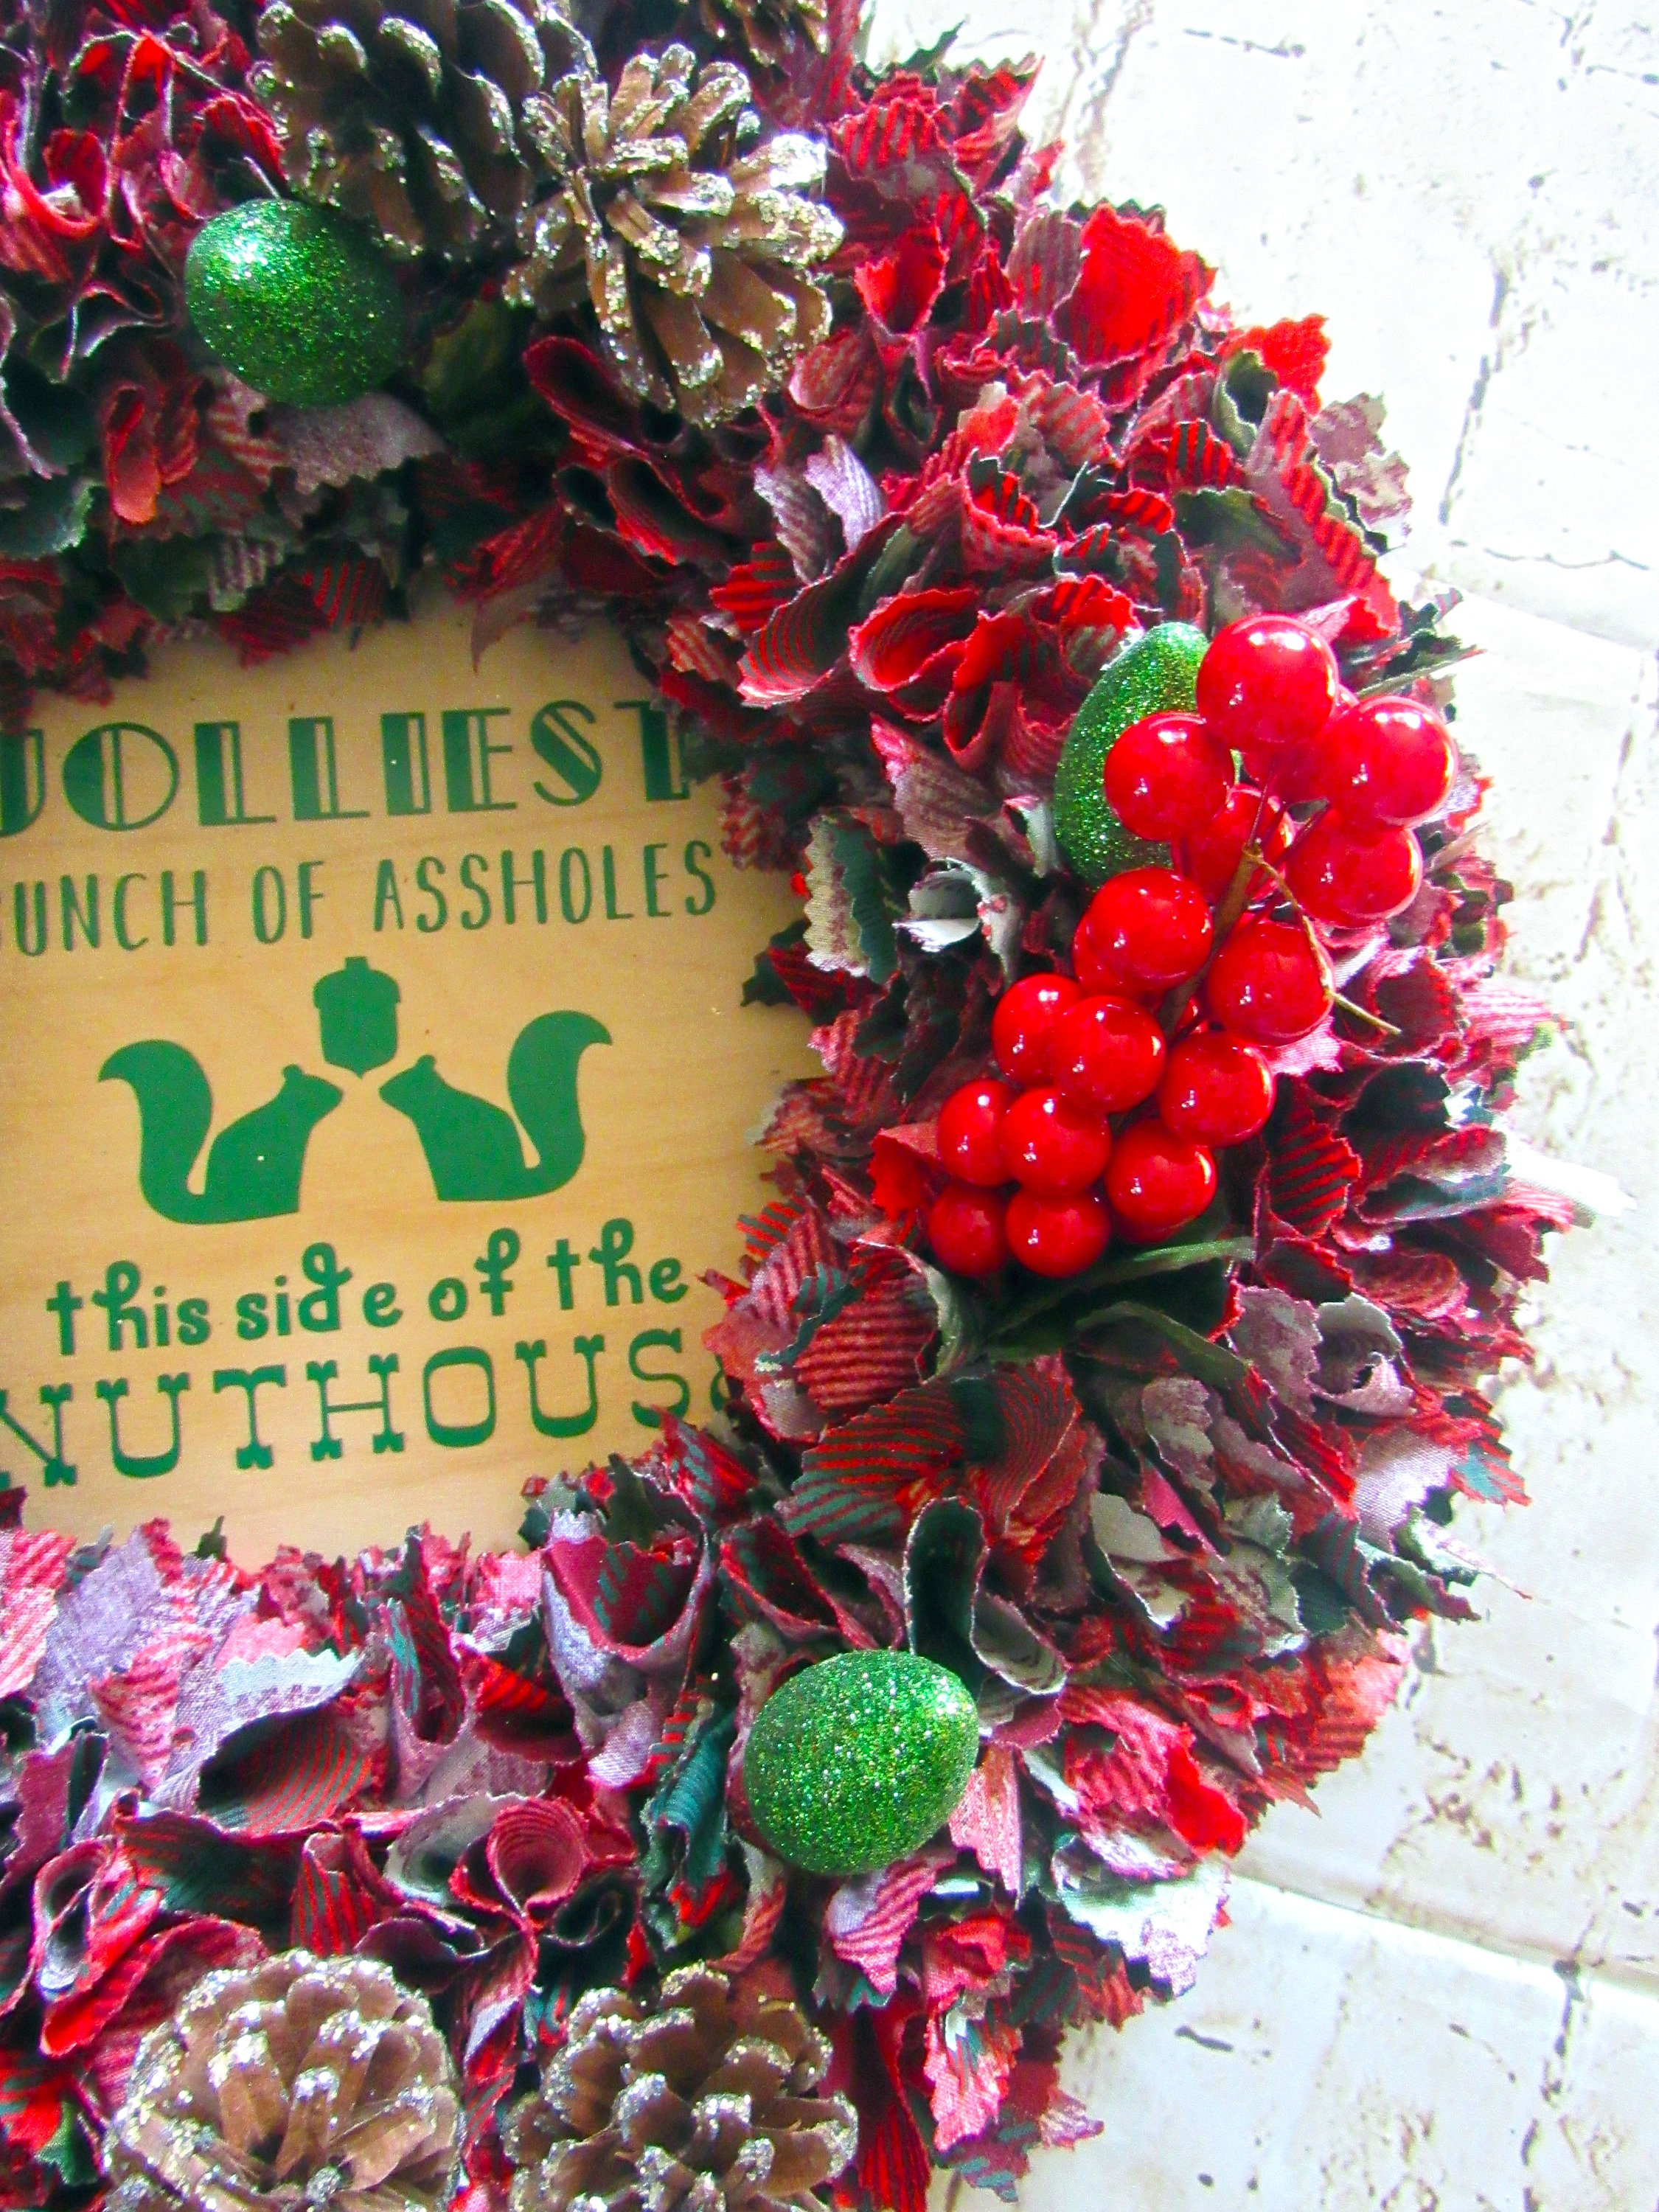 National Lampoons Christmas Vacation wreath/ Jolliest bunch of a ...